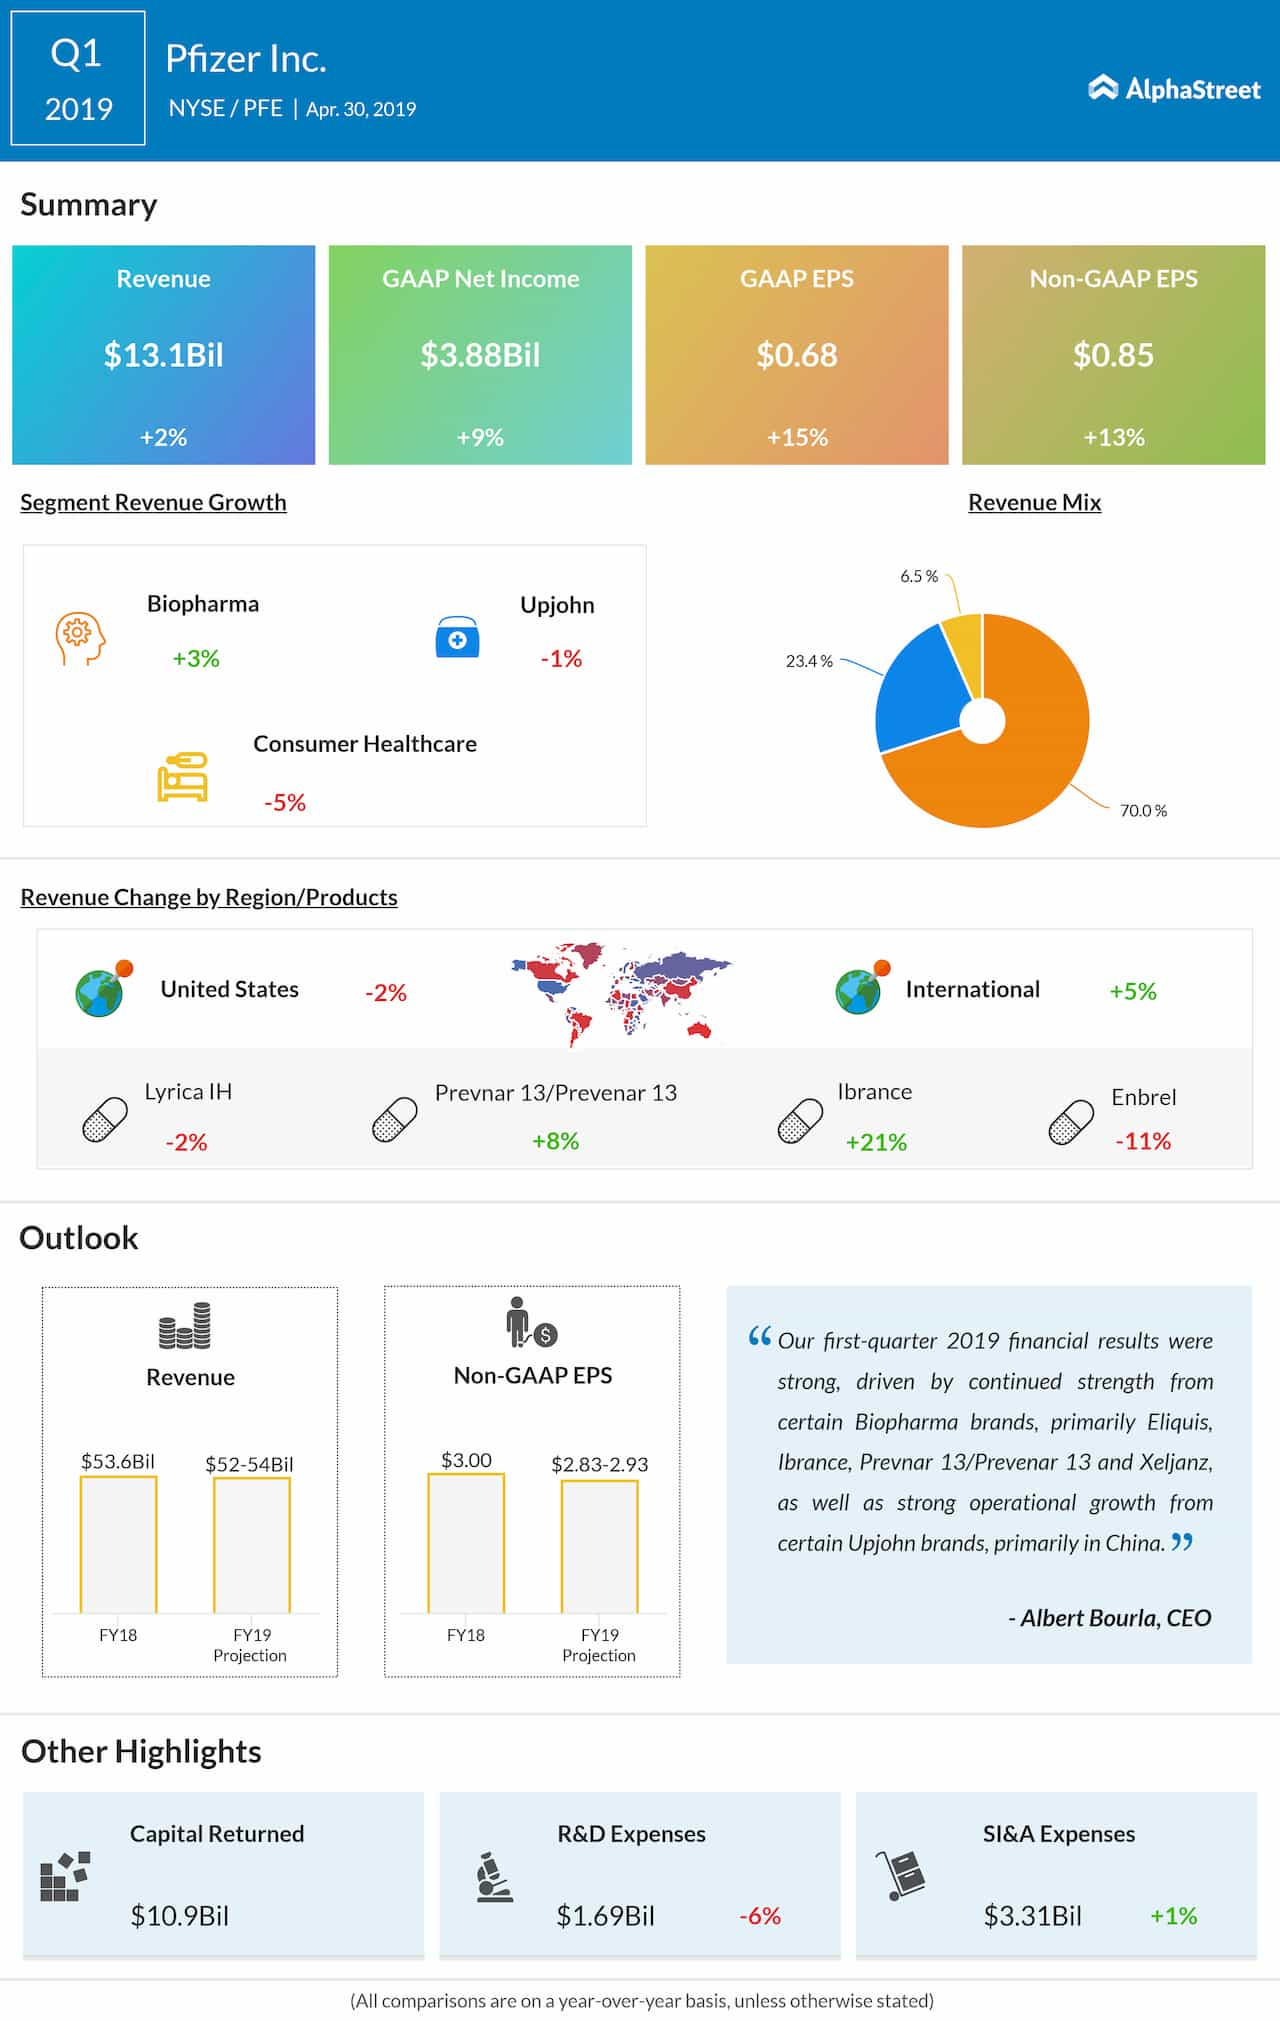 Pfizer Q1 2019 earnings infographic